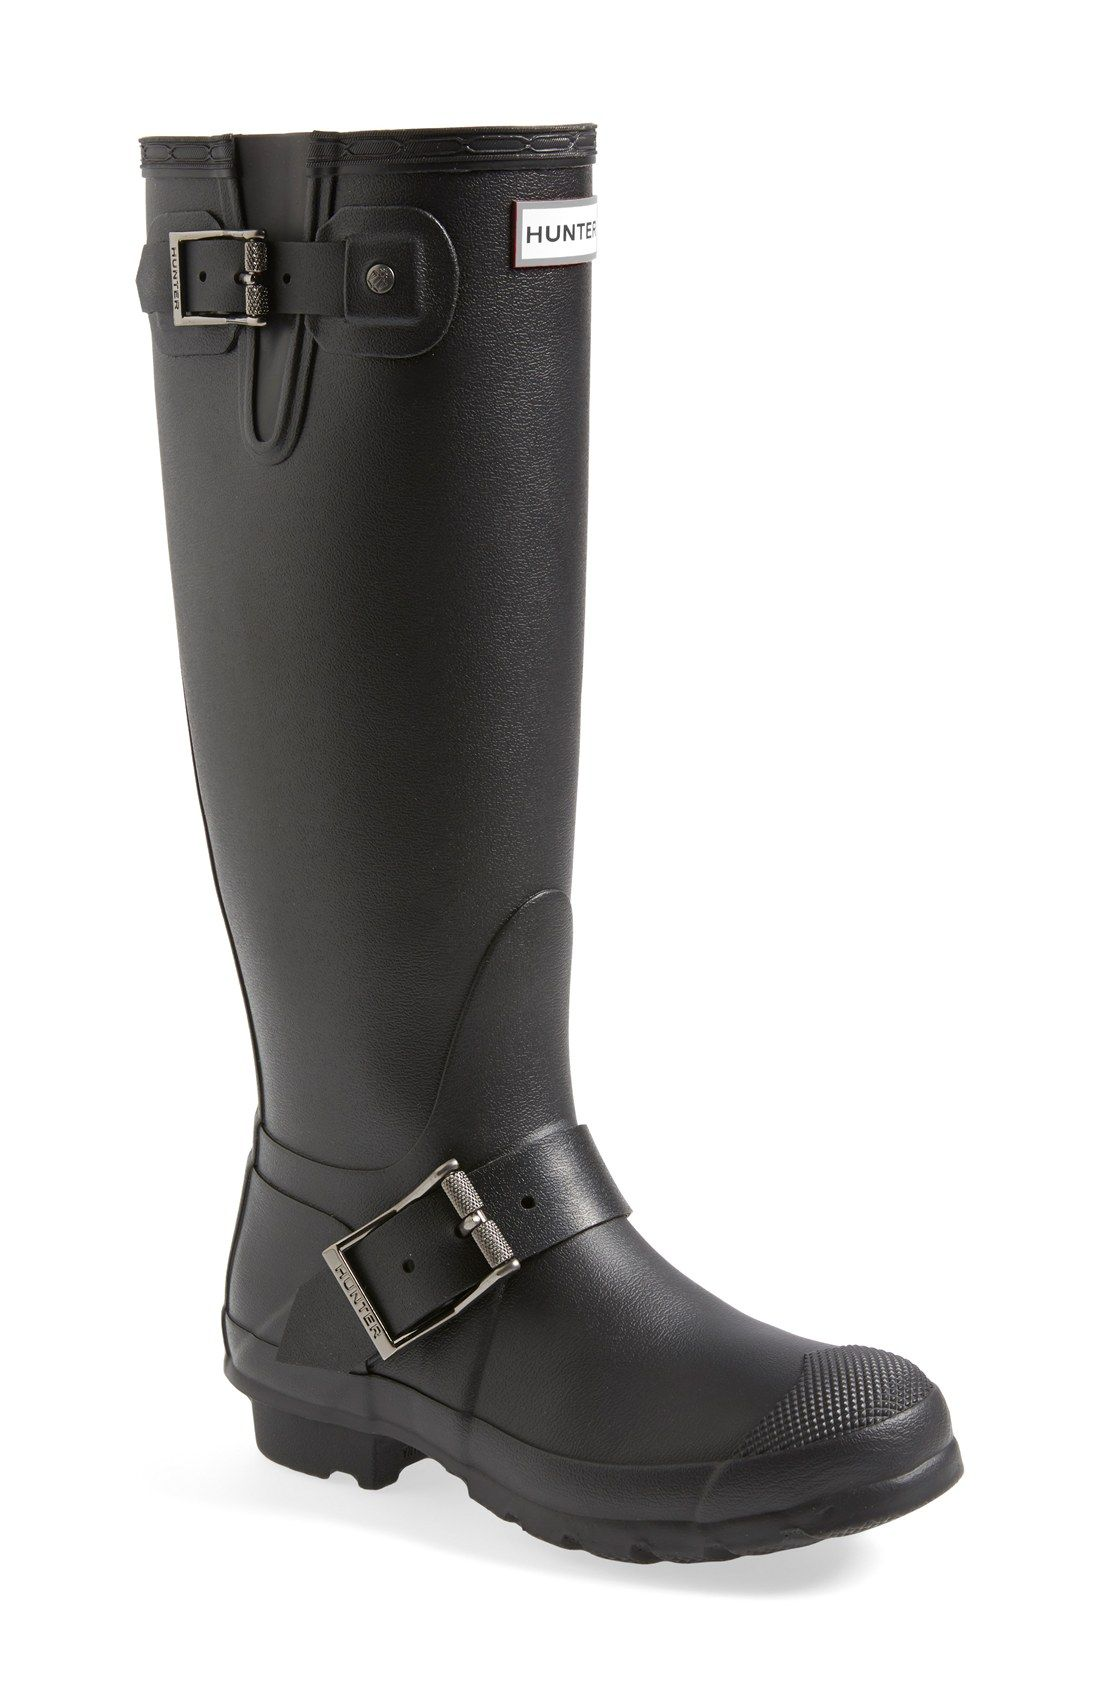 Hunter rain boots are a fall go-to!